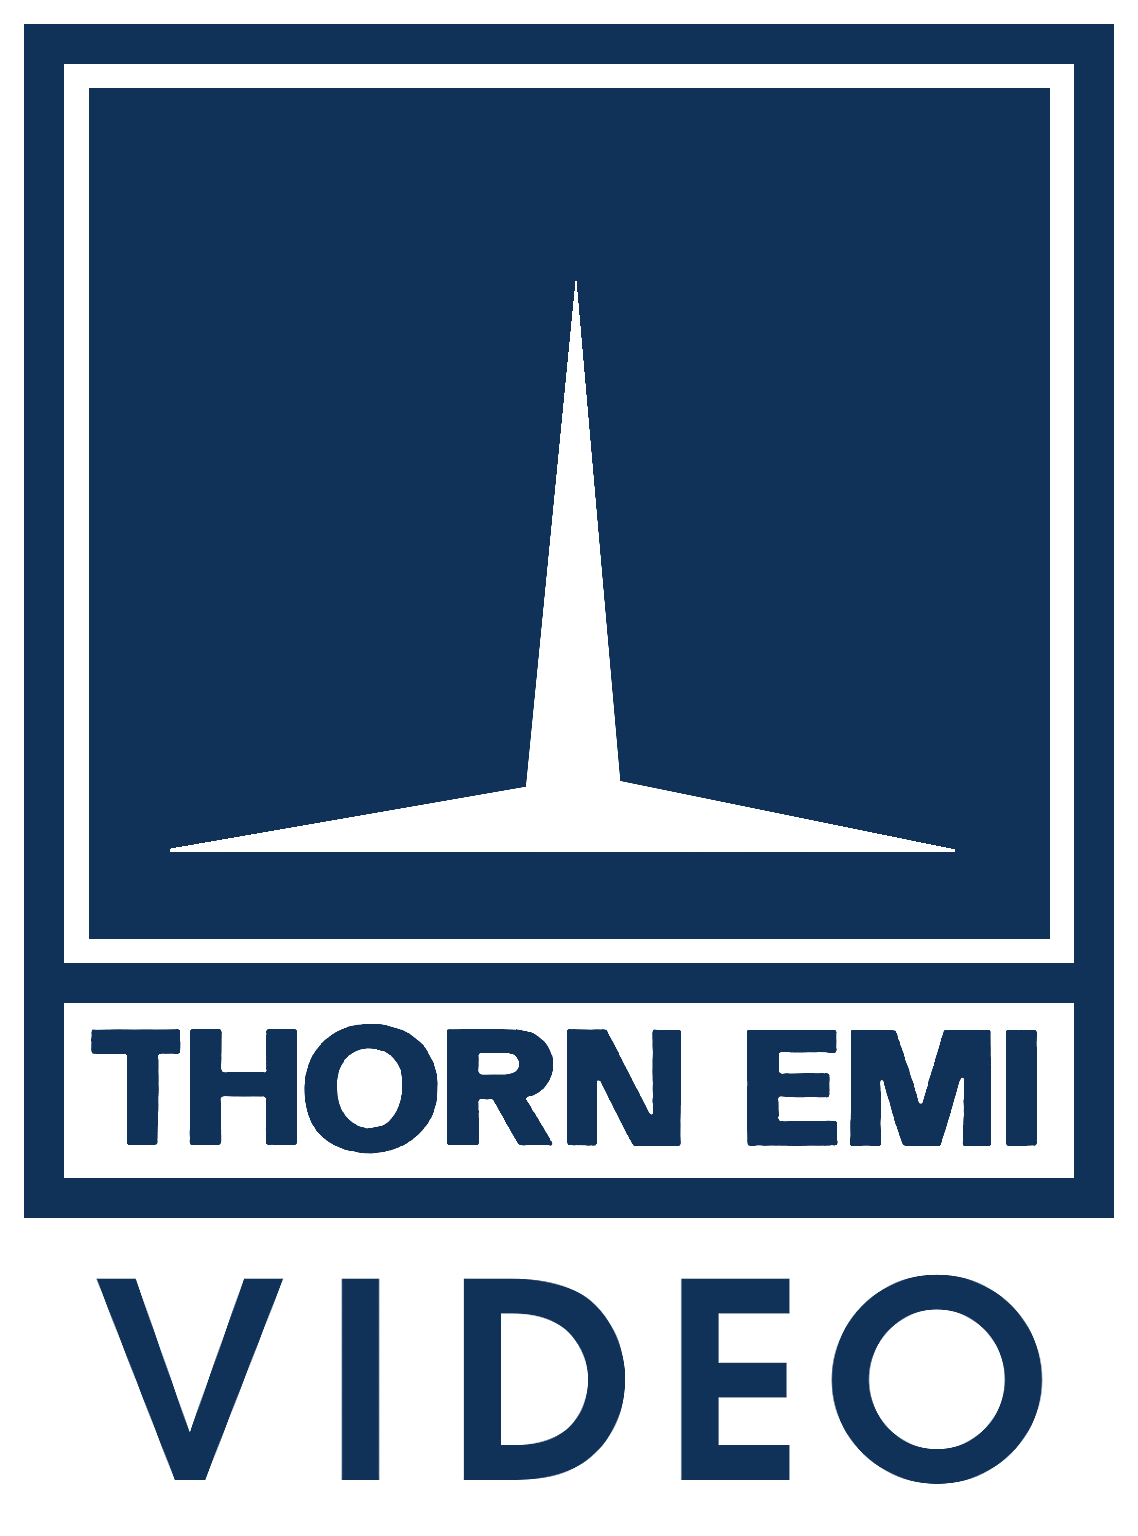 Thorn EMI Video